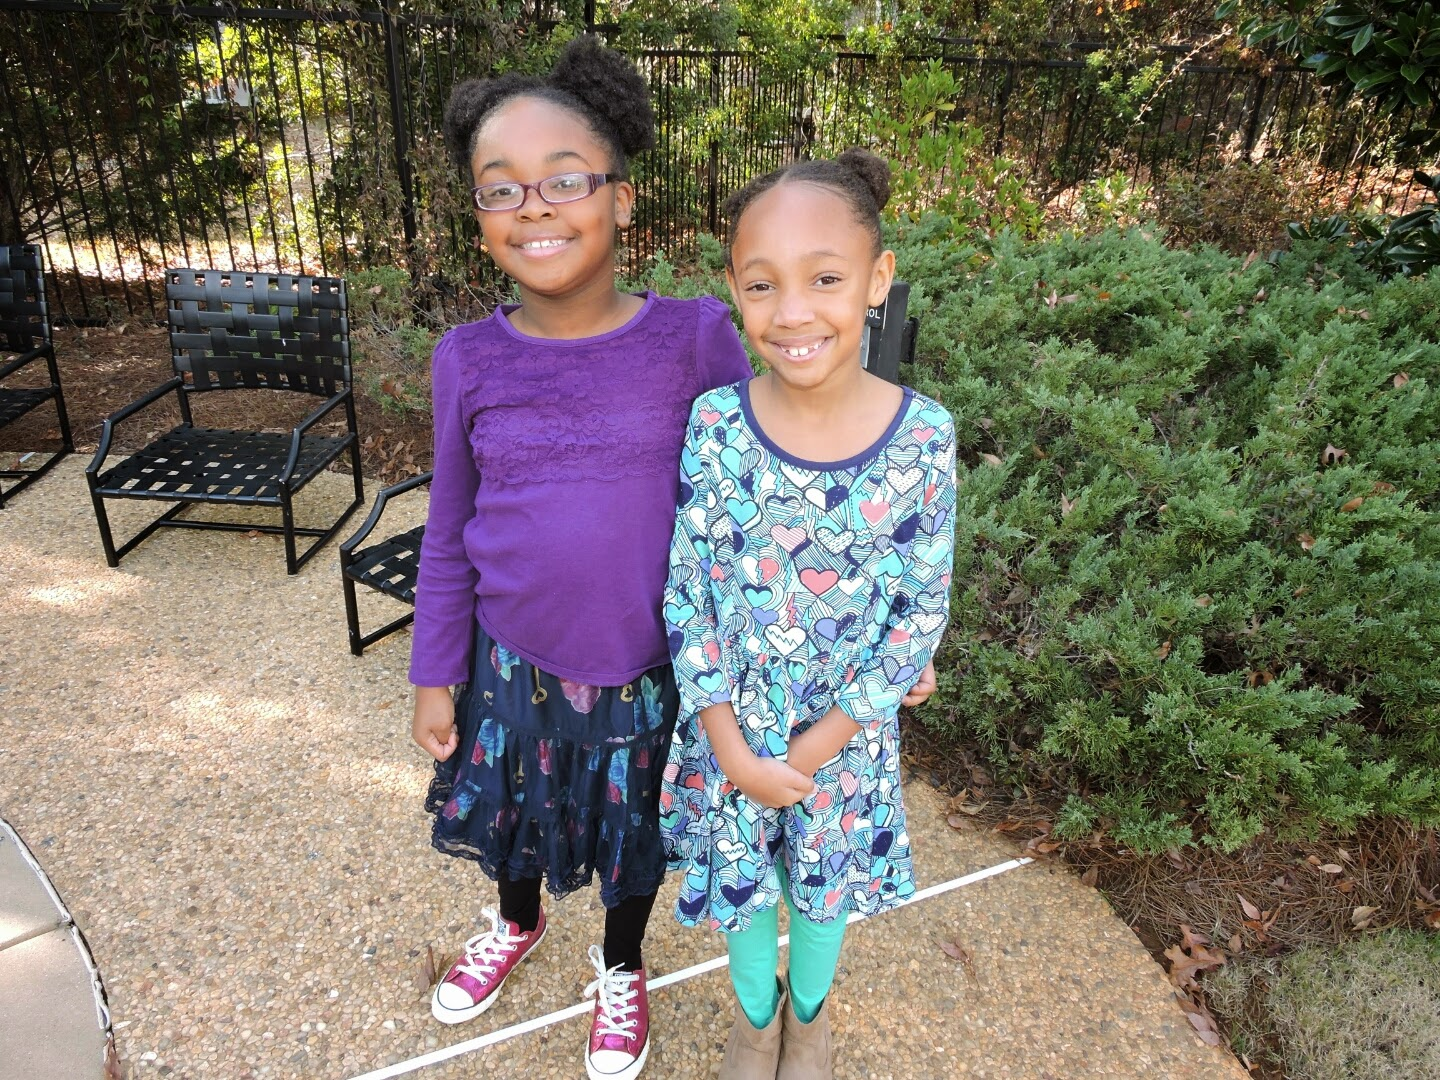 More Fall Outfits Picks From FabKids #LoveFabKids via www.productreviewmom.com